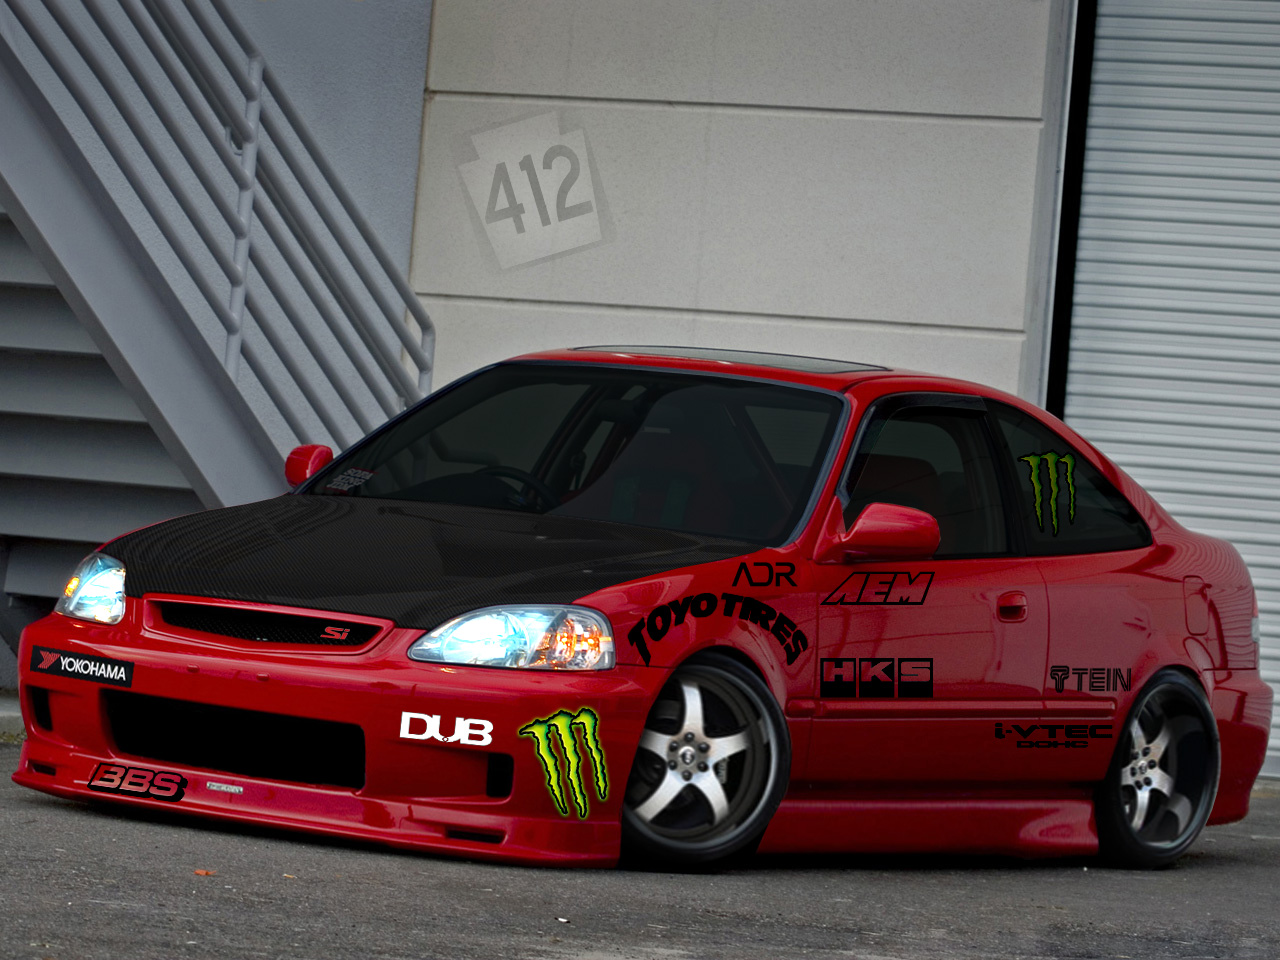 intPart: Honda civic, post 17